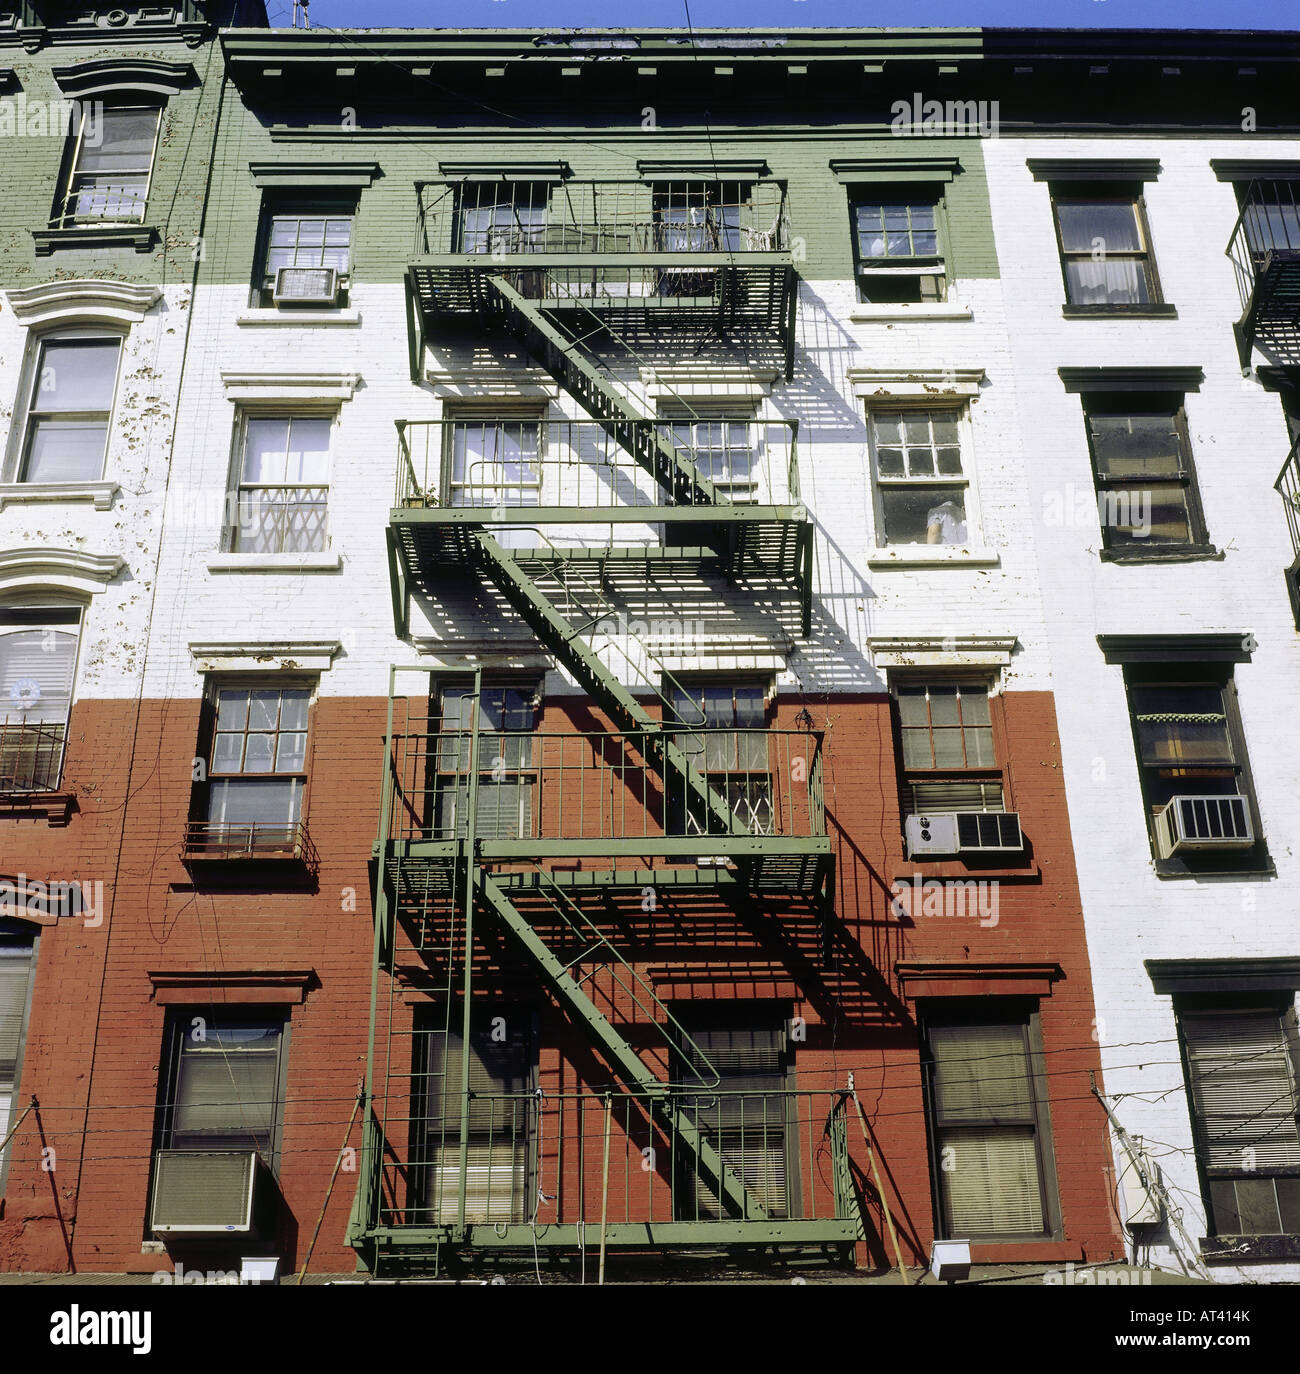 Francois Illas New Tradition: Geography / Travel, USA, New York, Little Italy, House